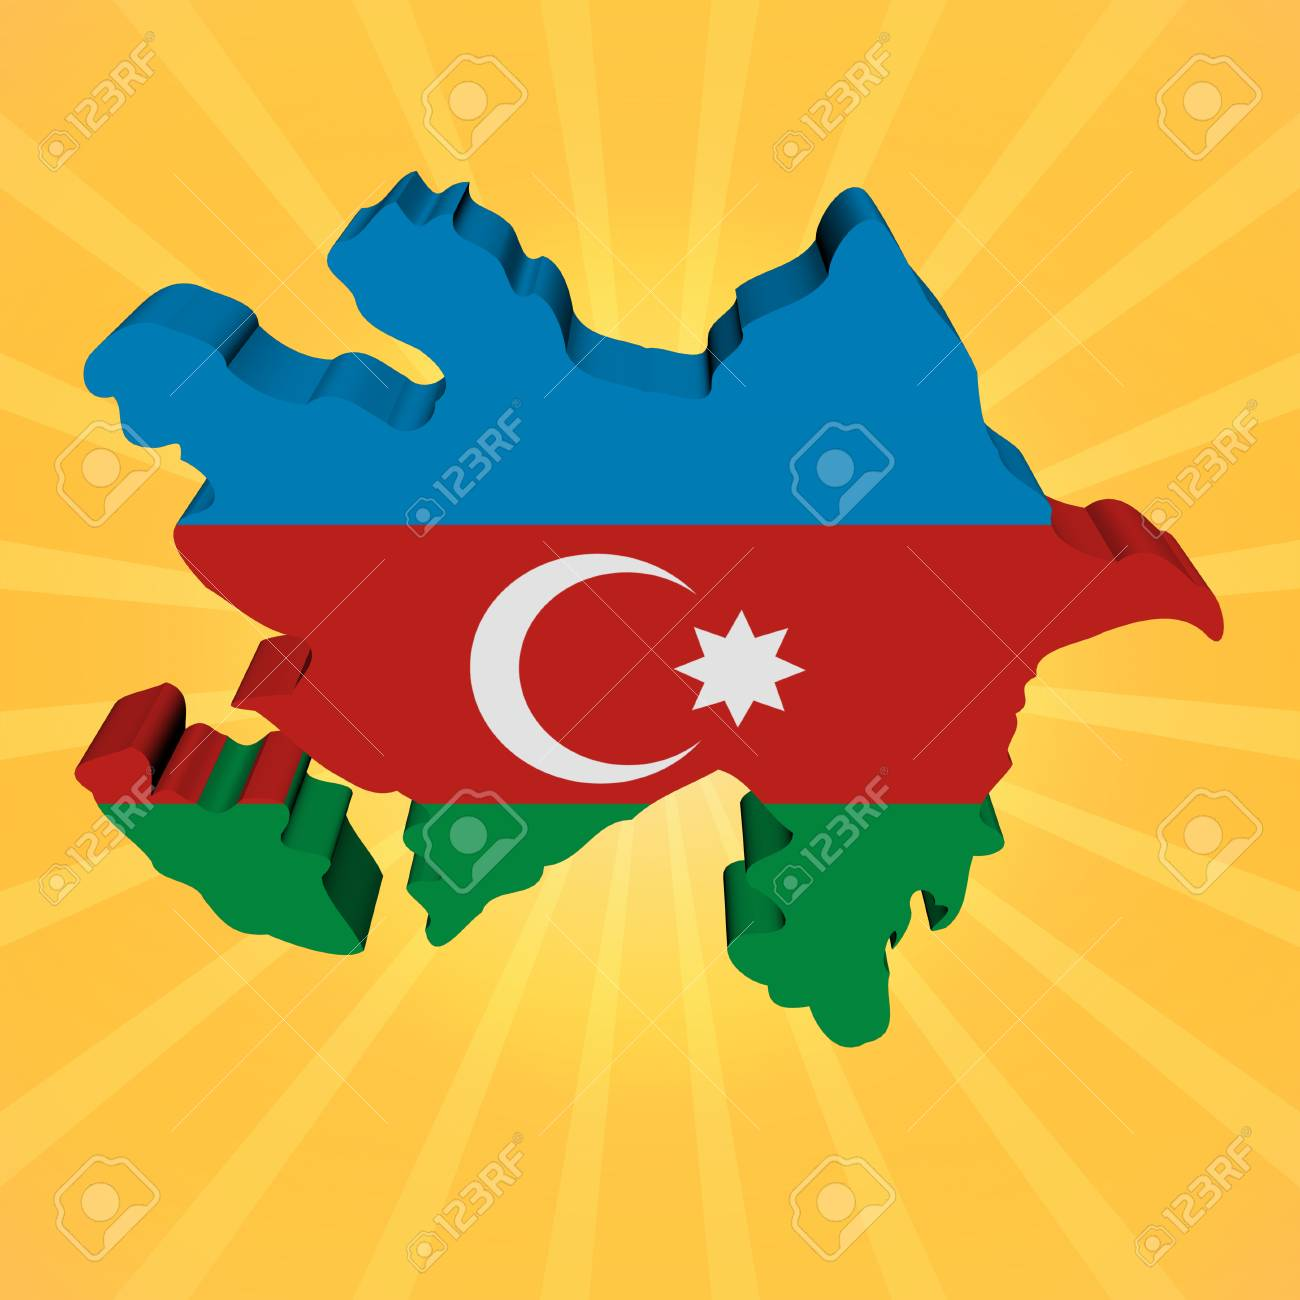 Azerbaijan Map Flag On Sunburst Illustration Stock Photo Picture And Royalty Free Image Image 29618371